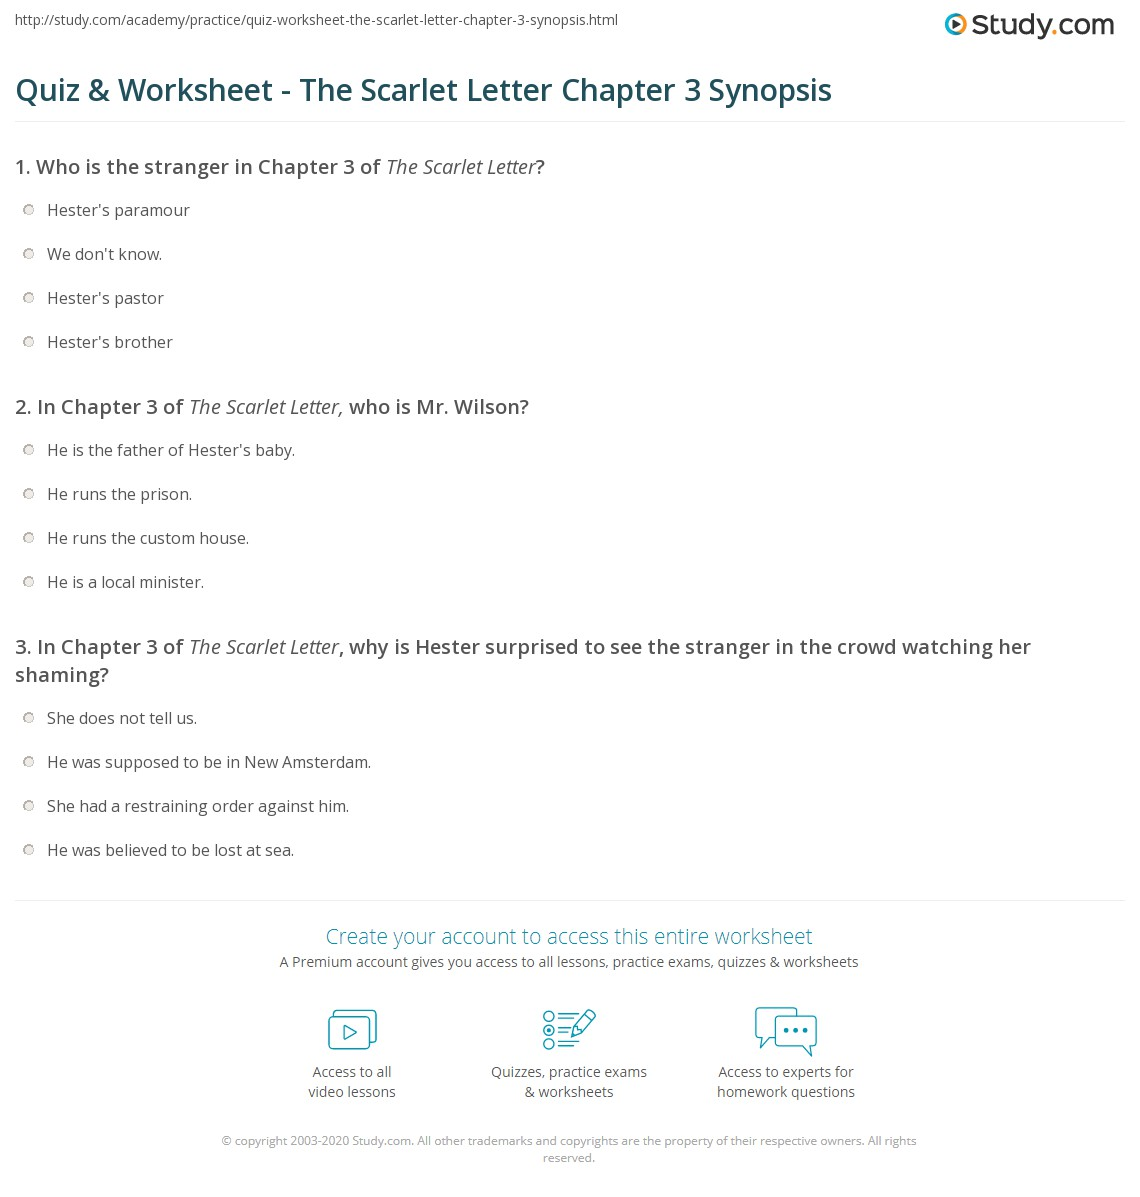 Quiz & Worksheet - The Scarlet Letter Chapter 3 Synopsis | Study.com